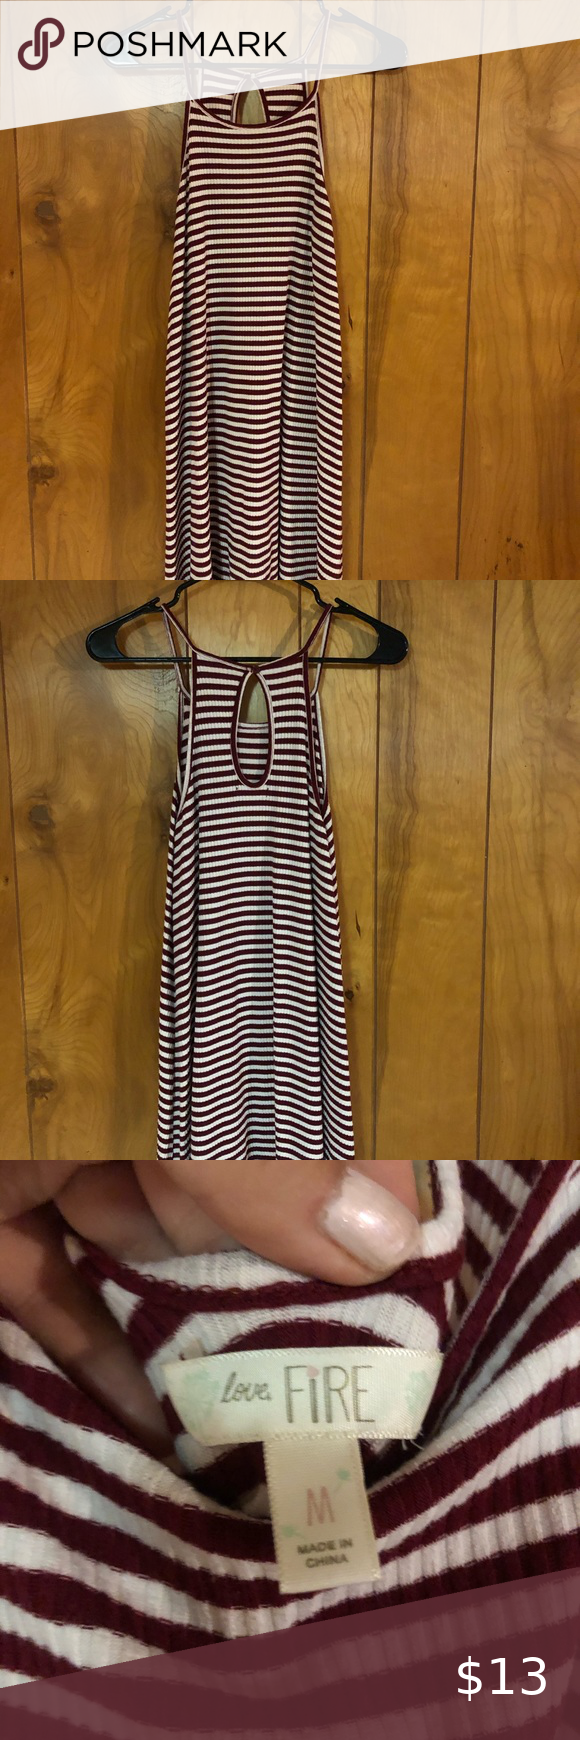 Striped Summer Dress Flowy Maroon And White Striped Dress Slightly Stretchy Material And Is So Comfy Striped Dress Summer Summer Dresses Flowy Summer Dresses [ 1740 x 580 Pixel ]